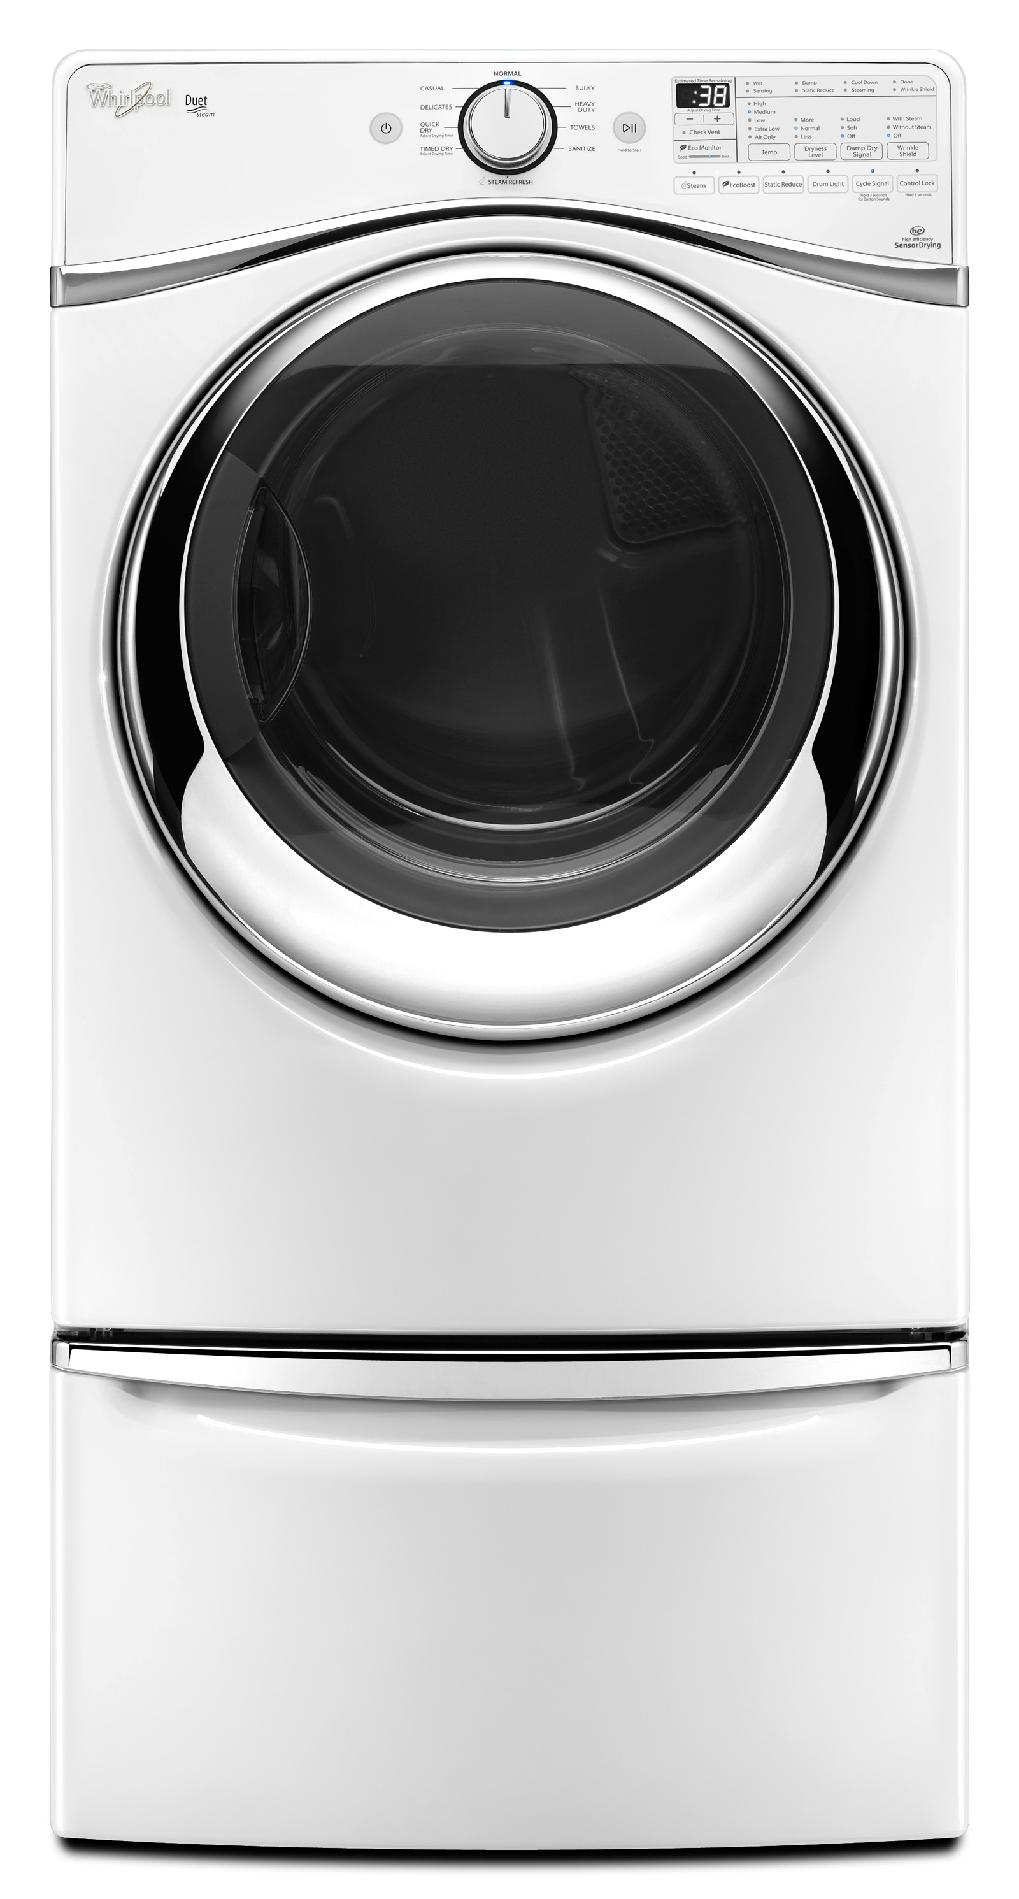 Whirlpool WGD97HEDW 7.4 cu. ft. Duet® Gas Dryer w/ SilentSteel™ Drum - White